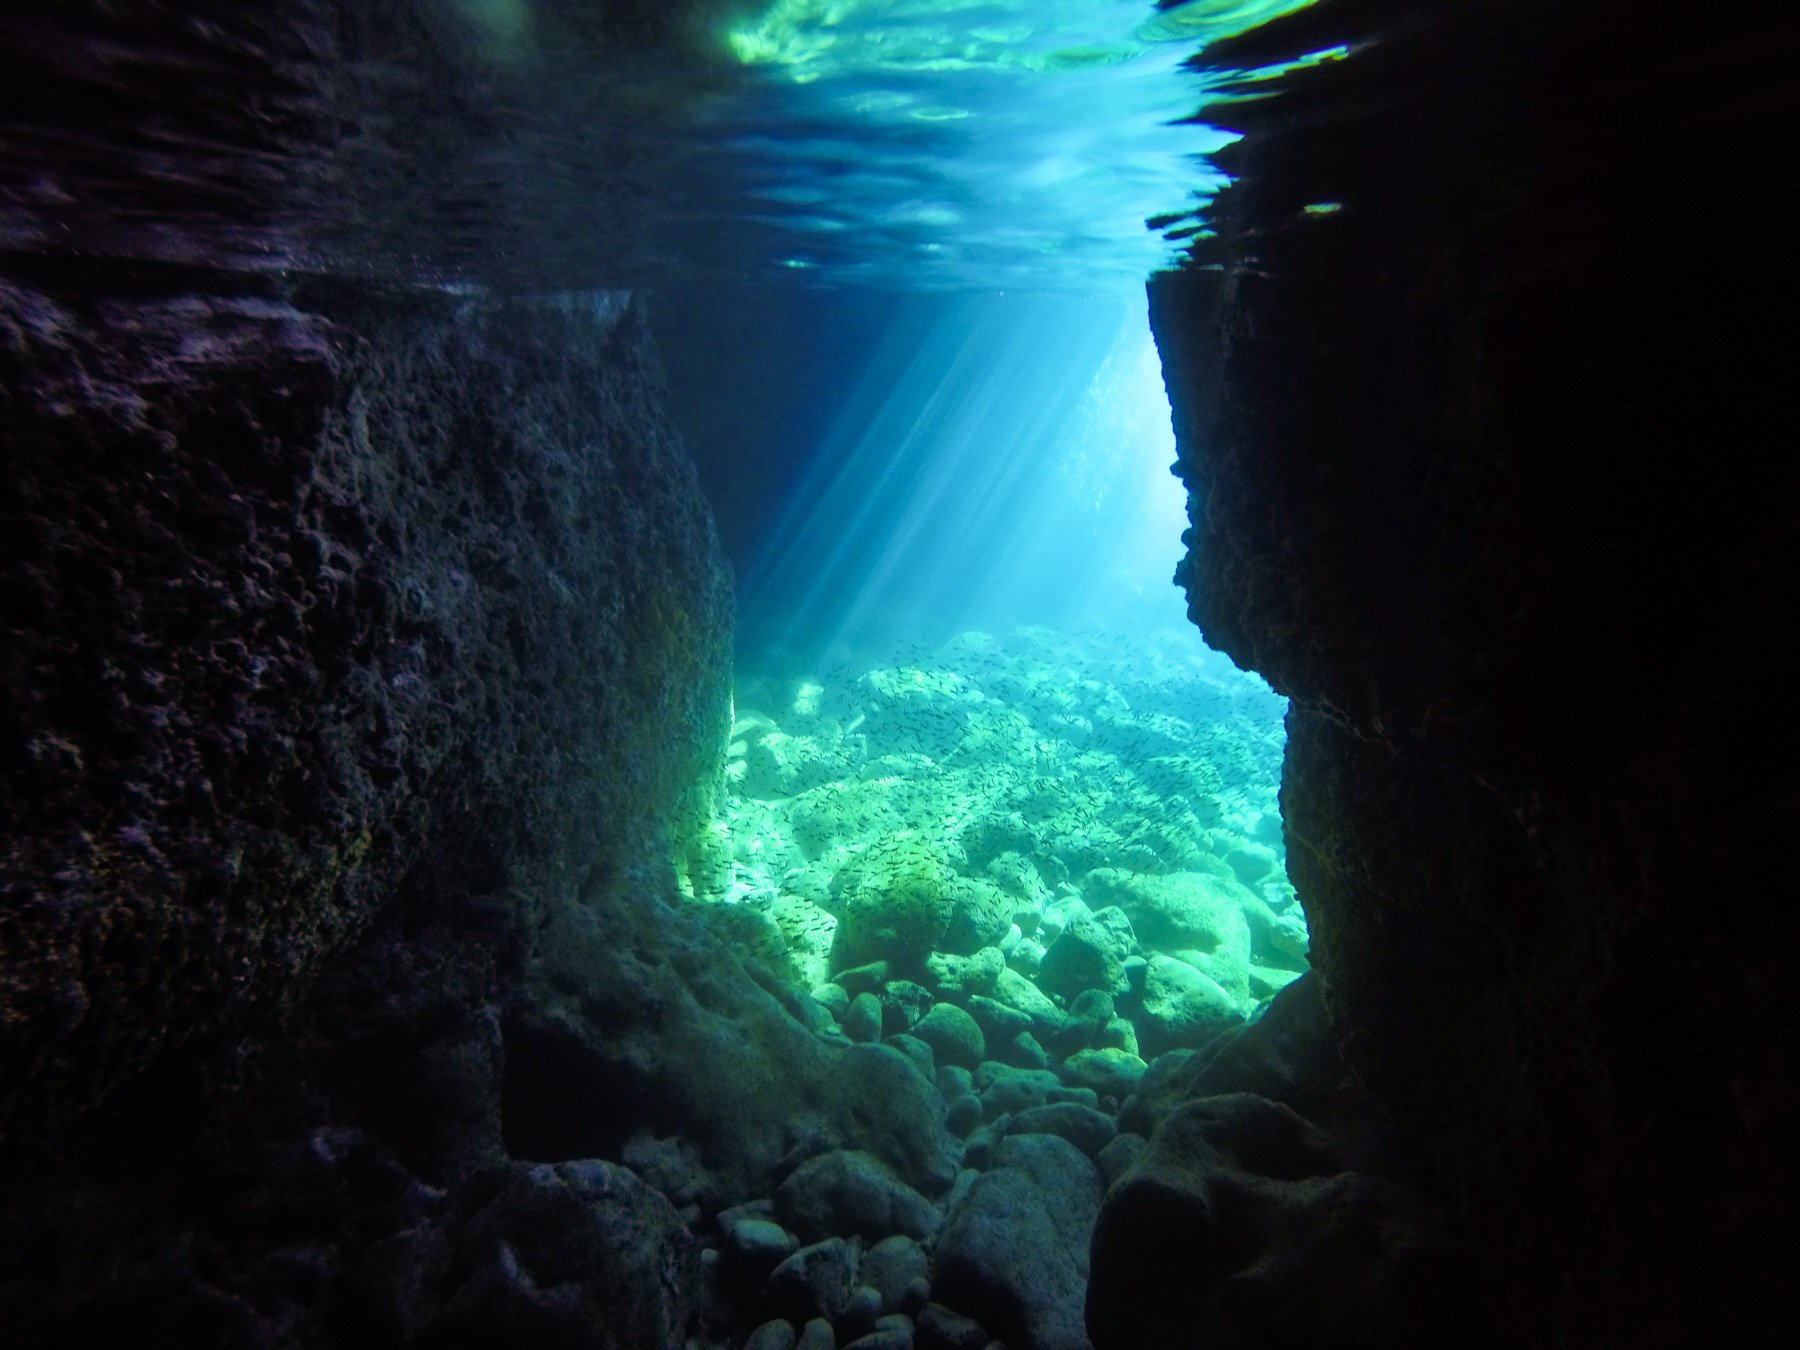 sunlight hitting the cave's water